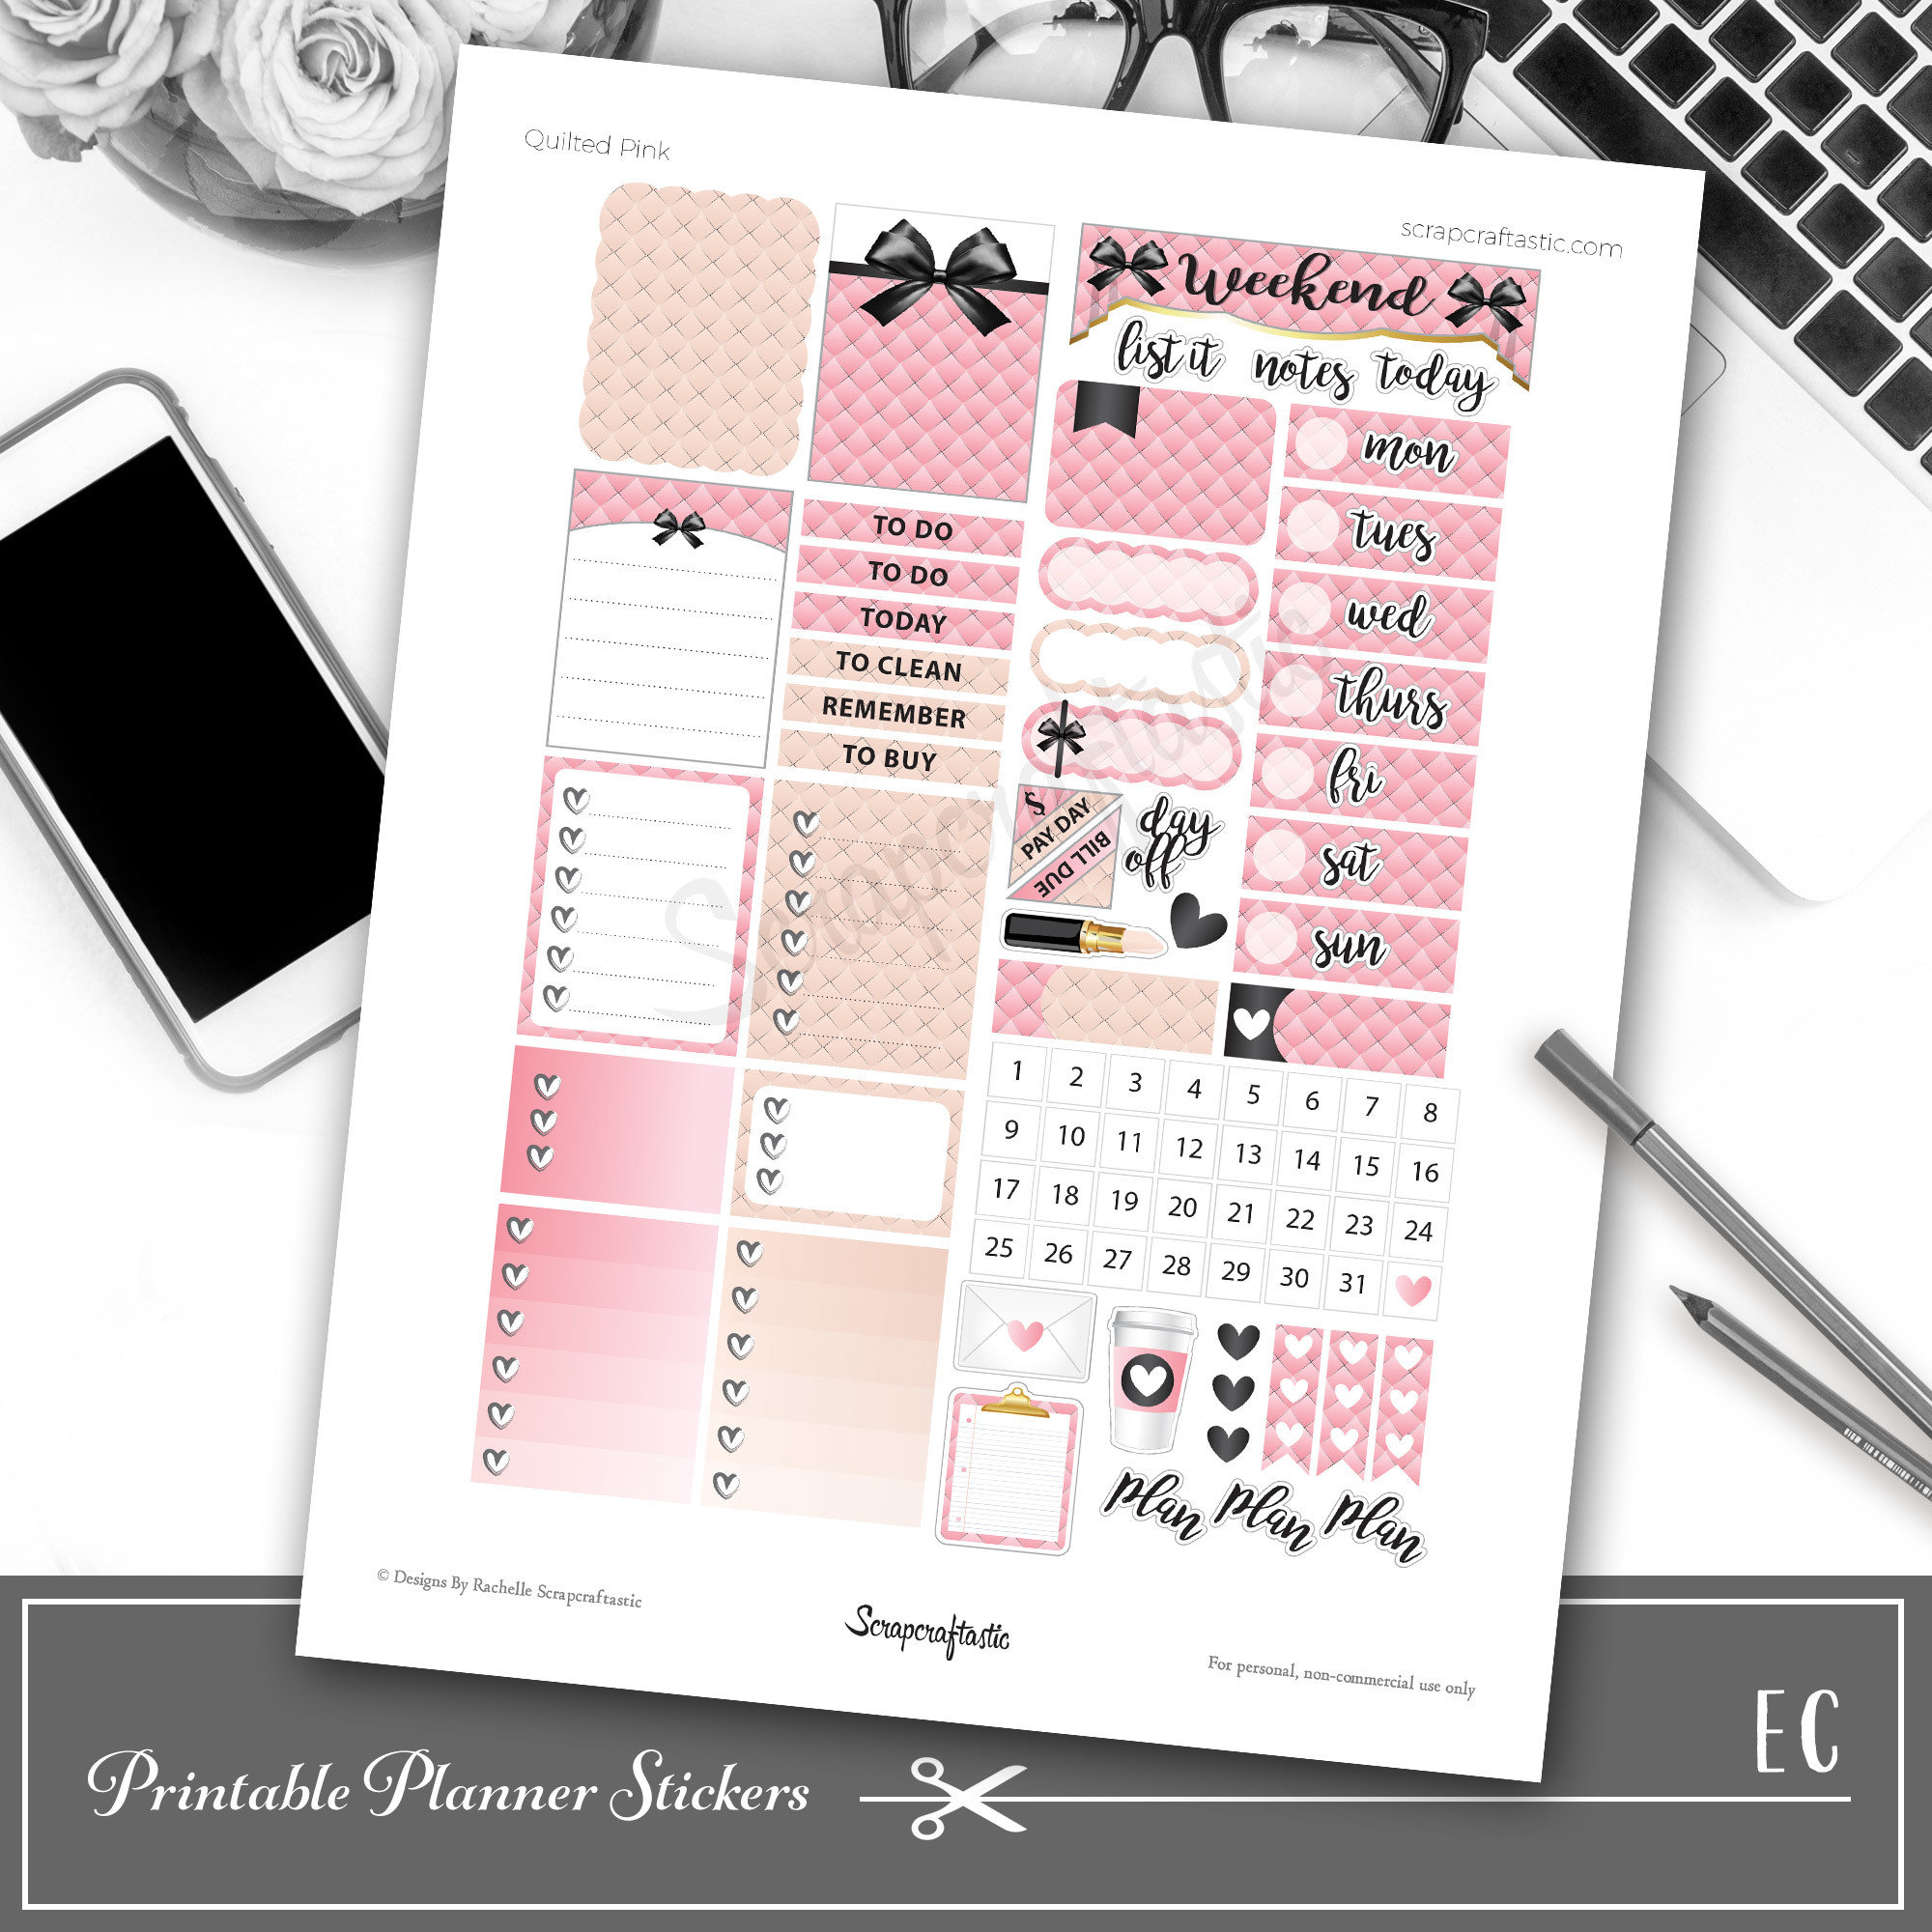 Quilted Pink Printable Planner Stickers 04164